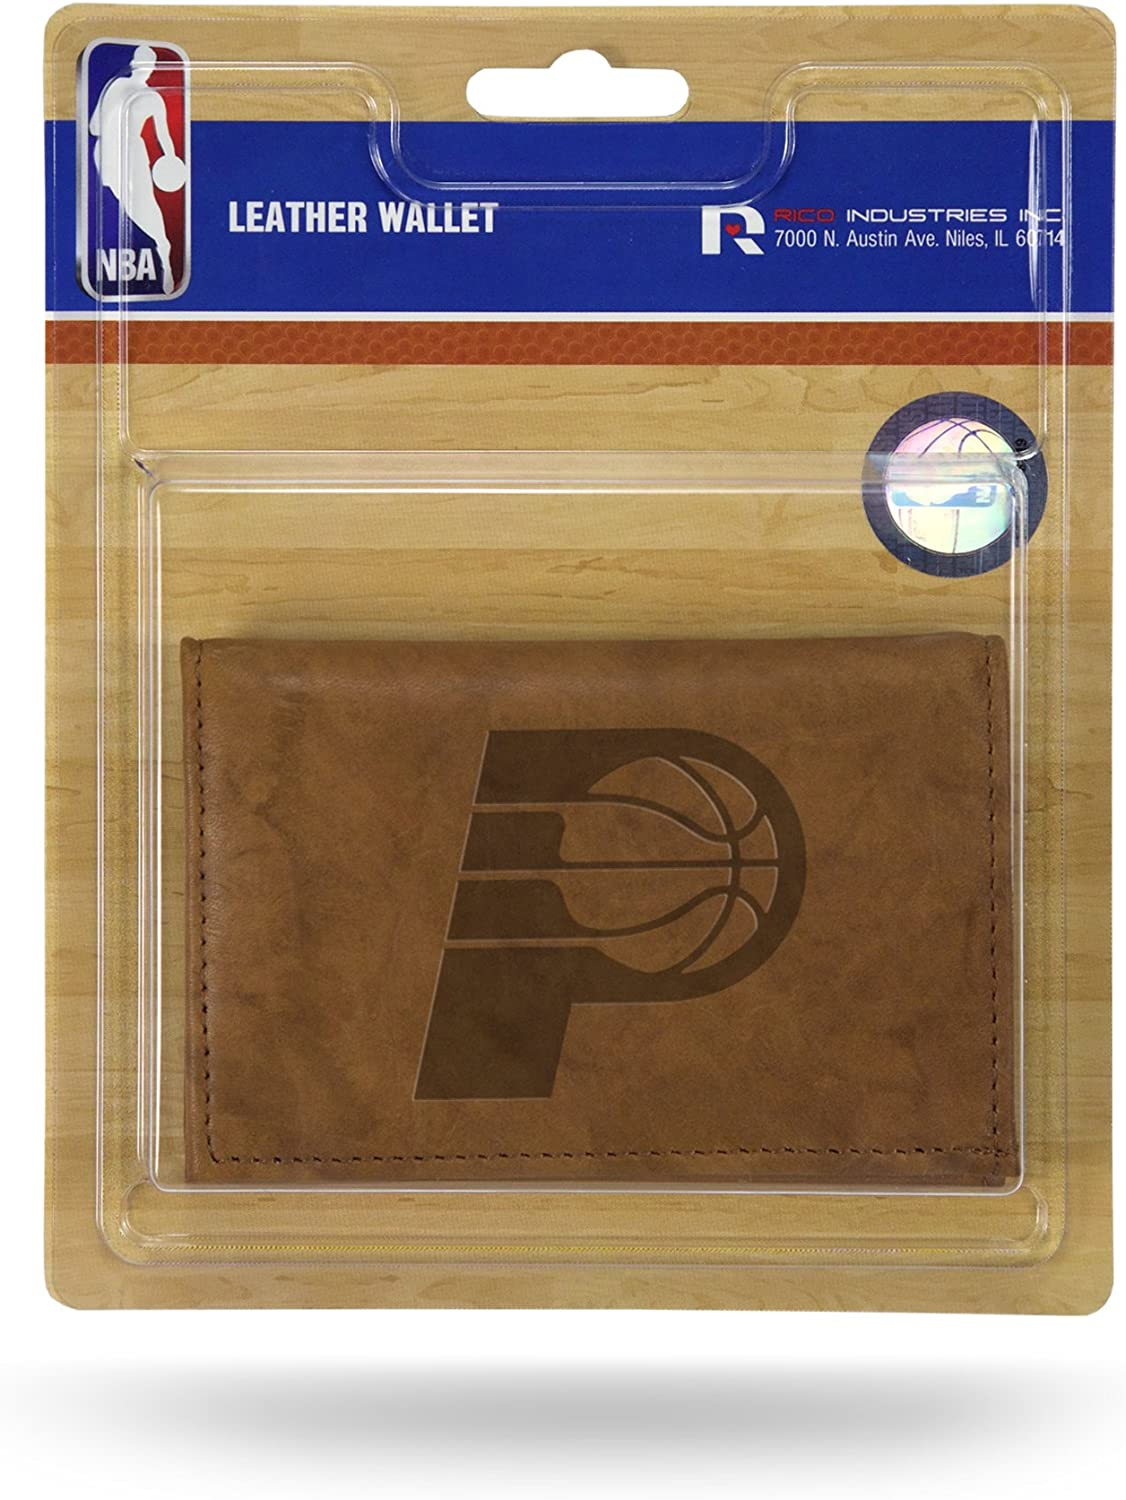 Rico Industries NBA Very popular! Max 73% OFF Atlanta Hawks Leather Wallet Trifold Ma with